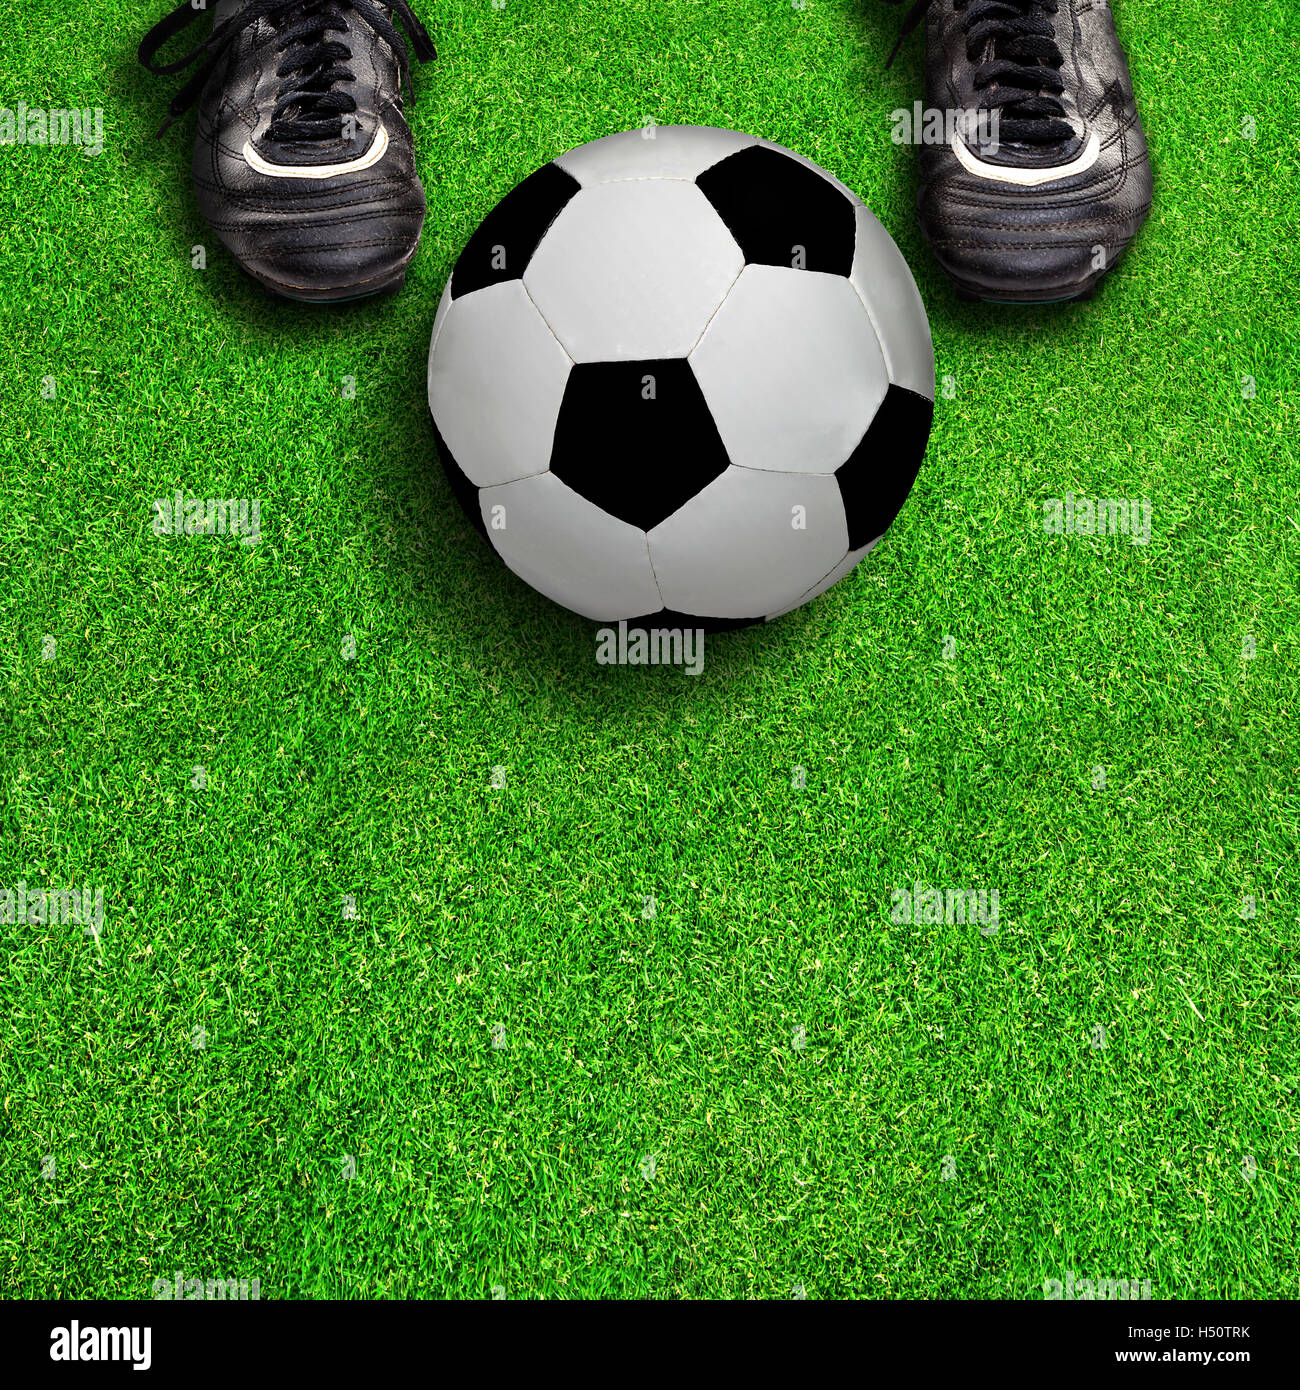 8ed624d04da Player standing on field showing soccer cleats with ball and copy space  below. - Stock